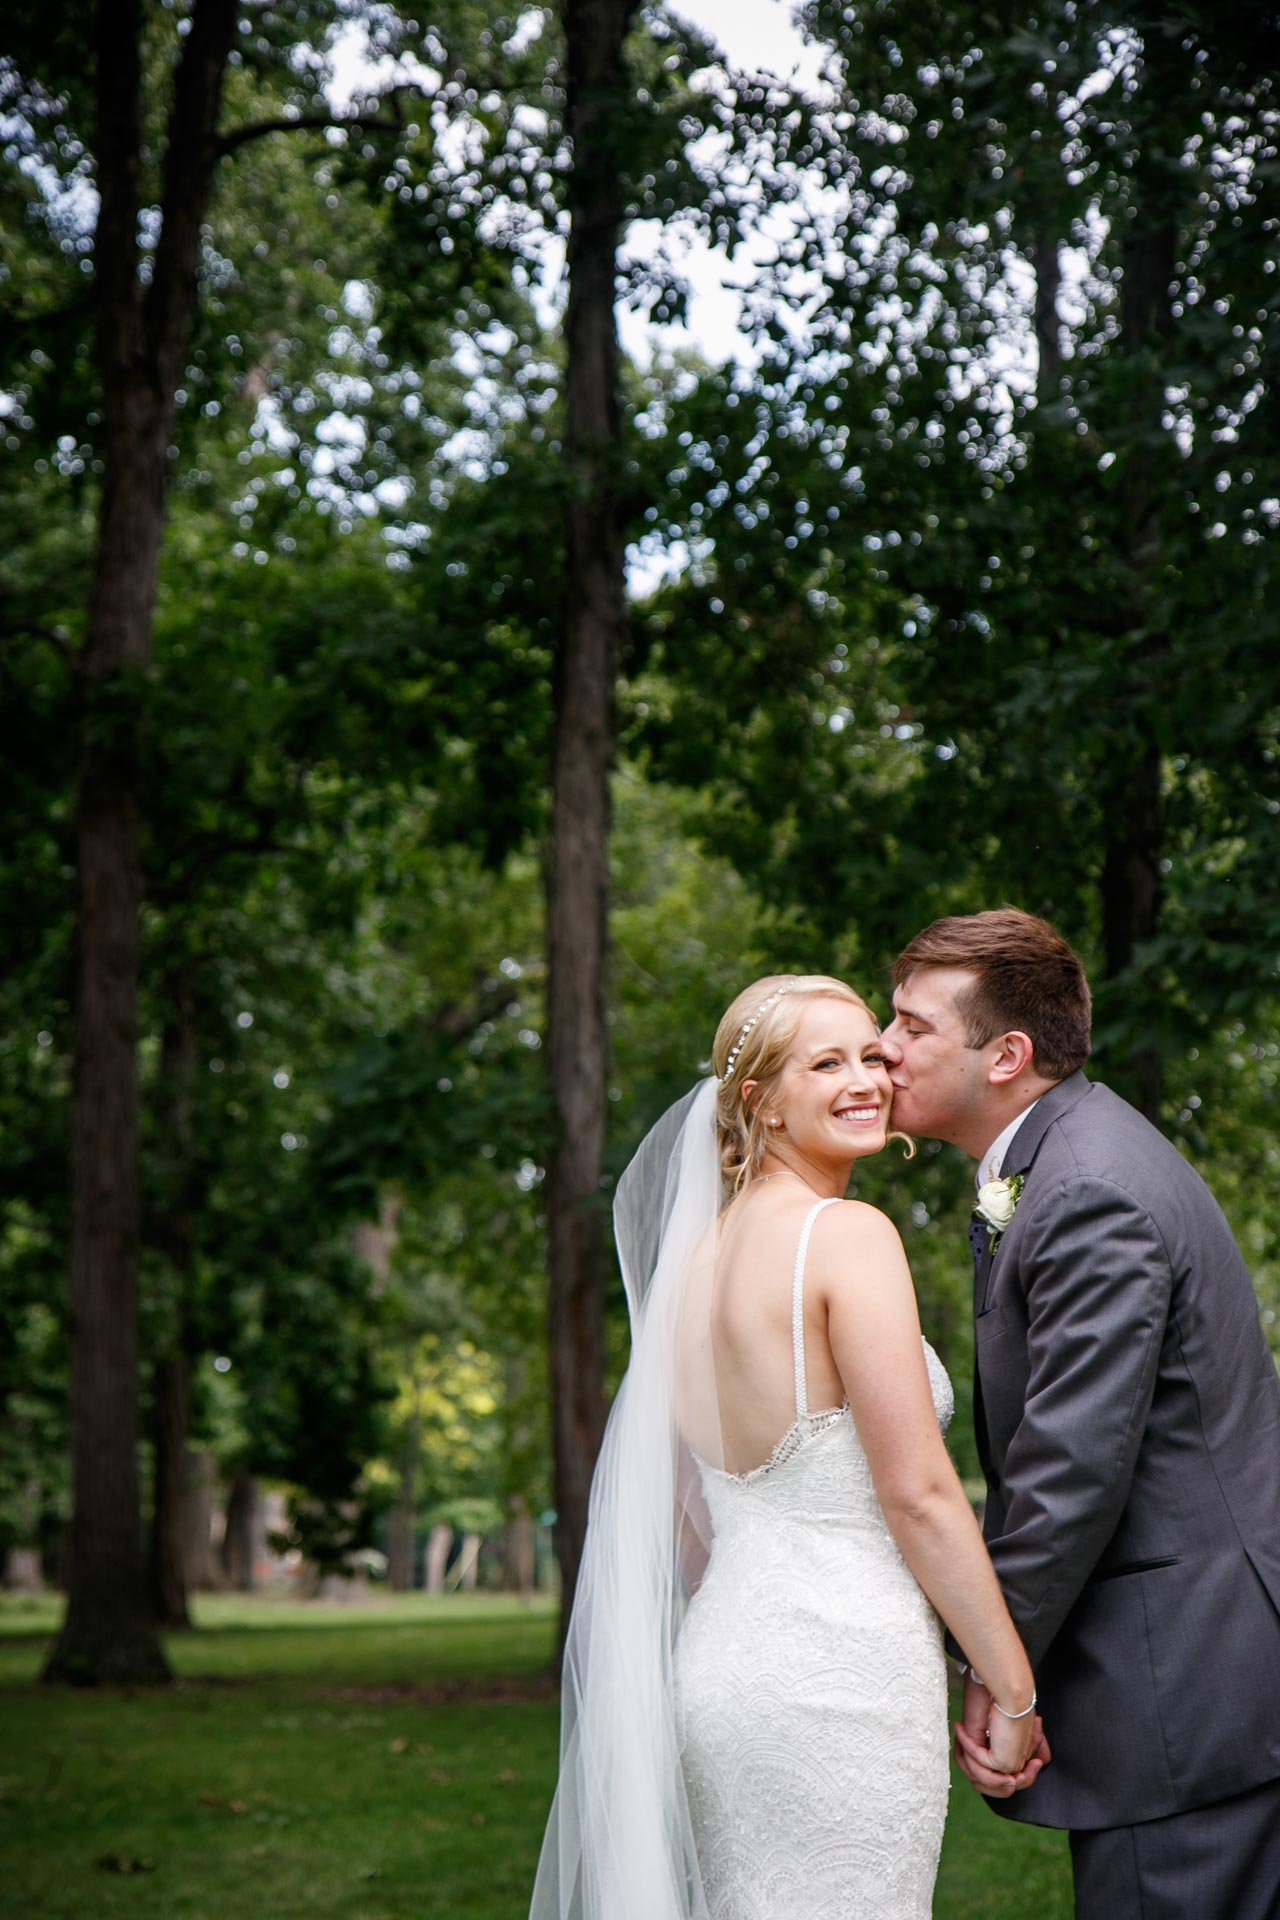 neenah-riverside-park-bride-groom-adam-shea-photography-green-bay-appleton-neenah-photographer-8.jpg